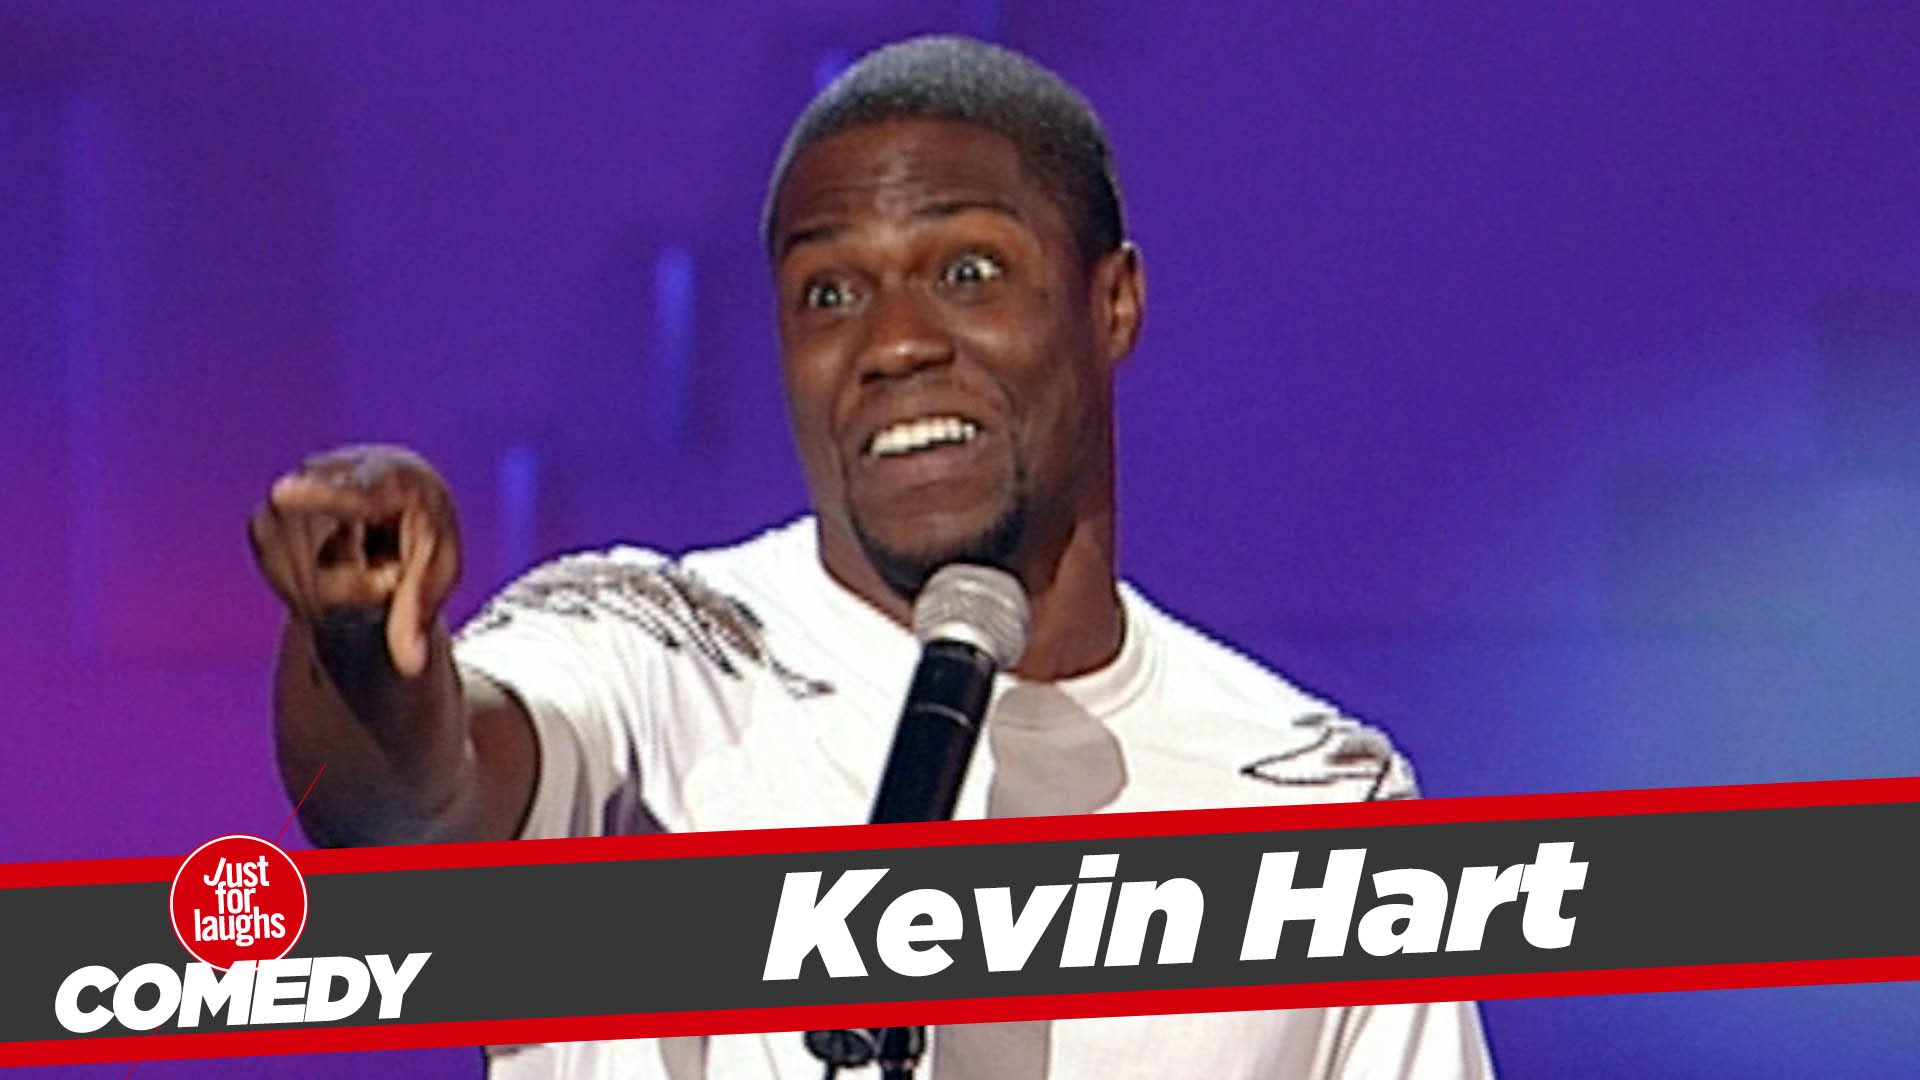 Kevin Hart Comedy Shows 2018 Tixbag Tickets